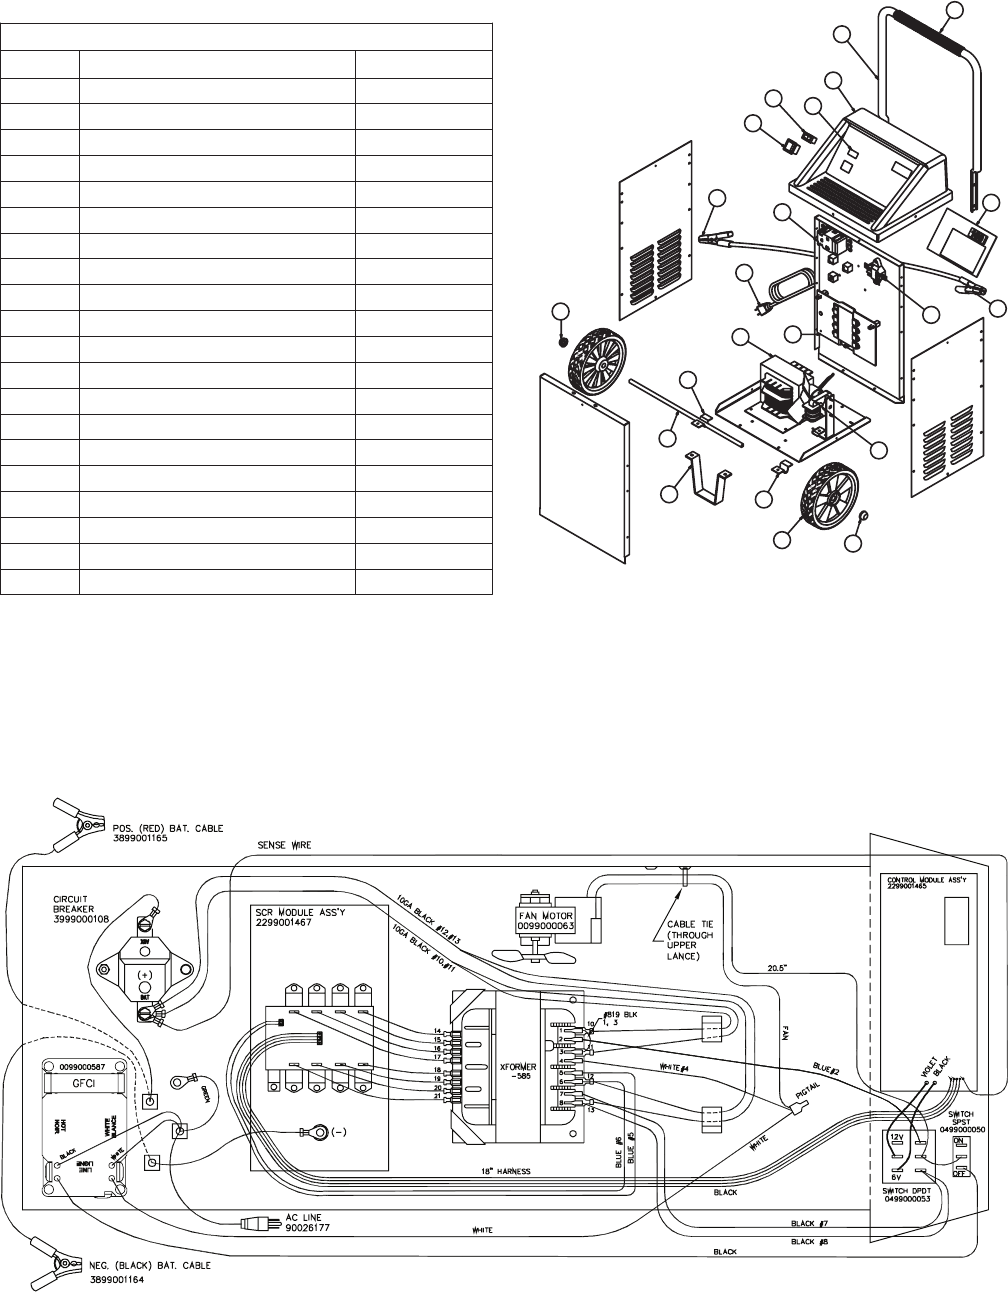 Napa Fan Switch Wiring Diagrams Trusted Wiring Diagram Vaughan Wiring  Diagram Schumacher Psw Wiring Diagram